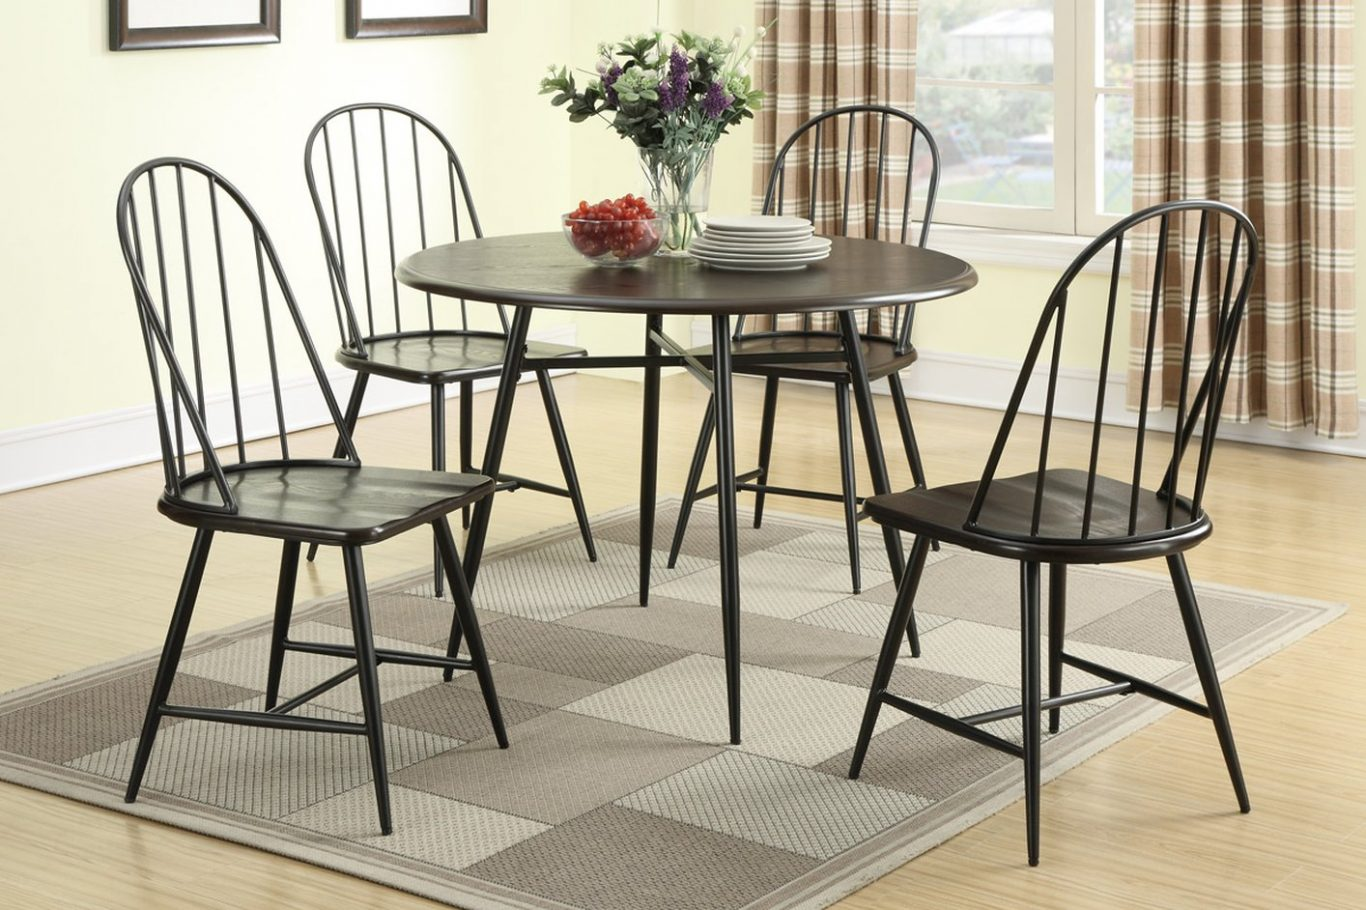 Cheap Metal Dining Chairs Set of 4